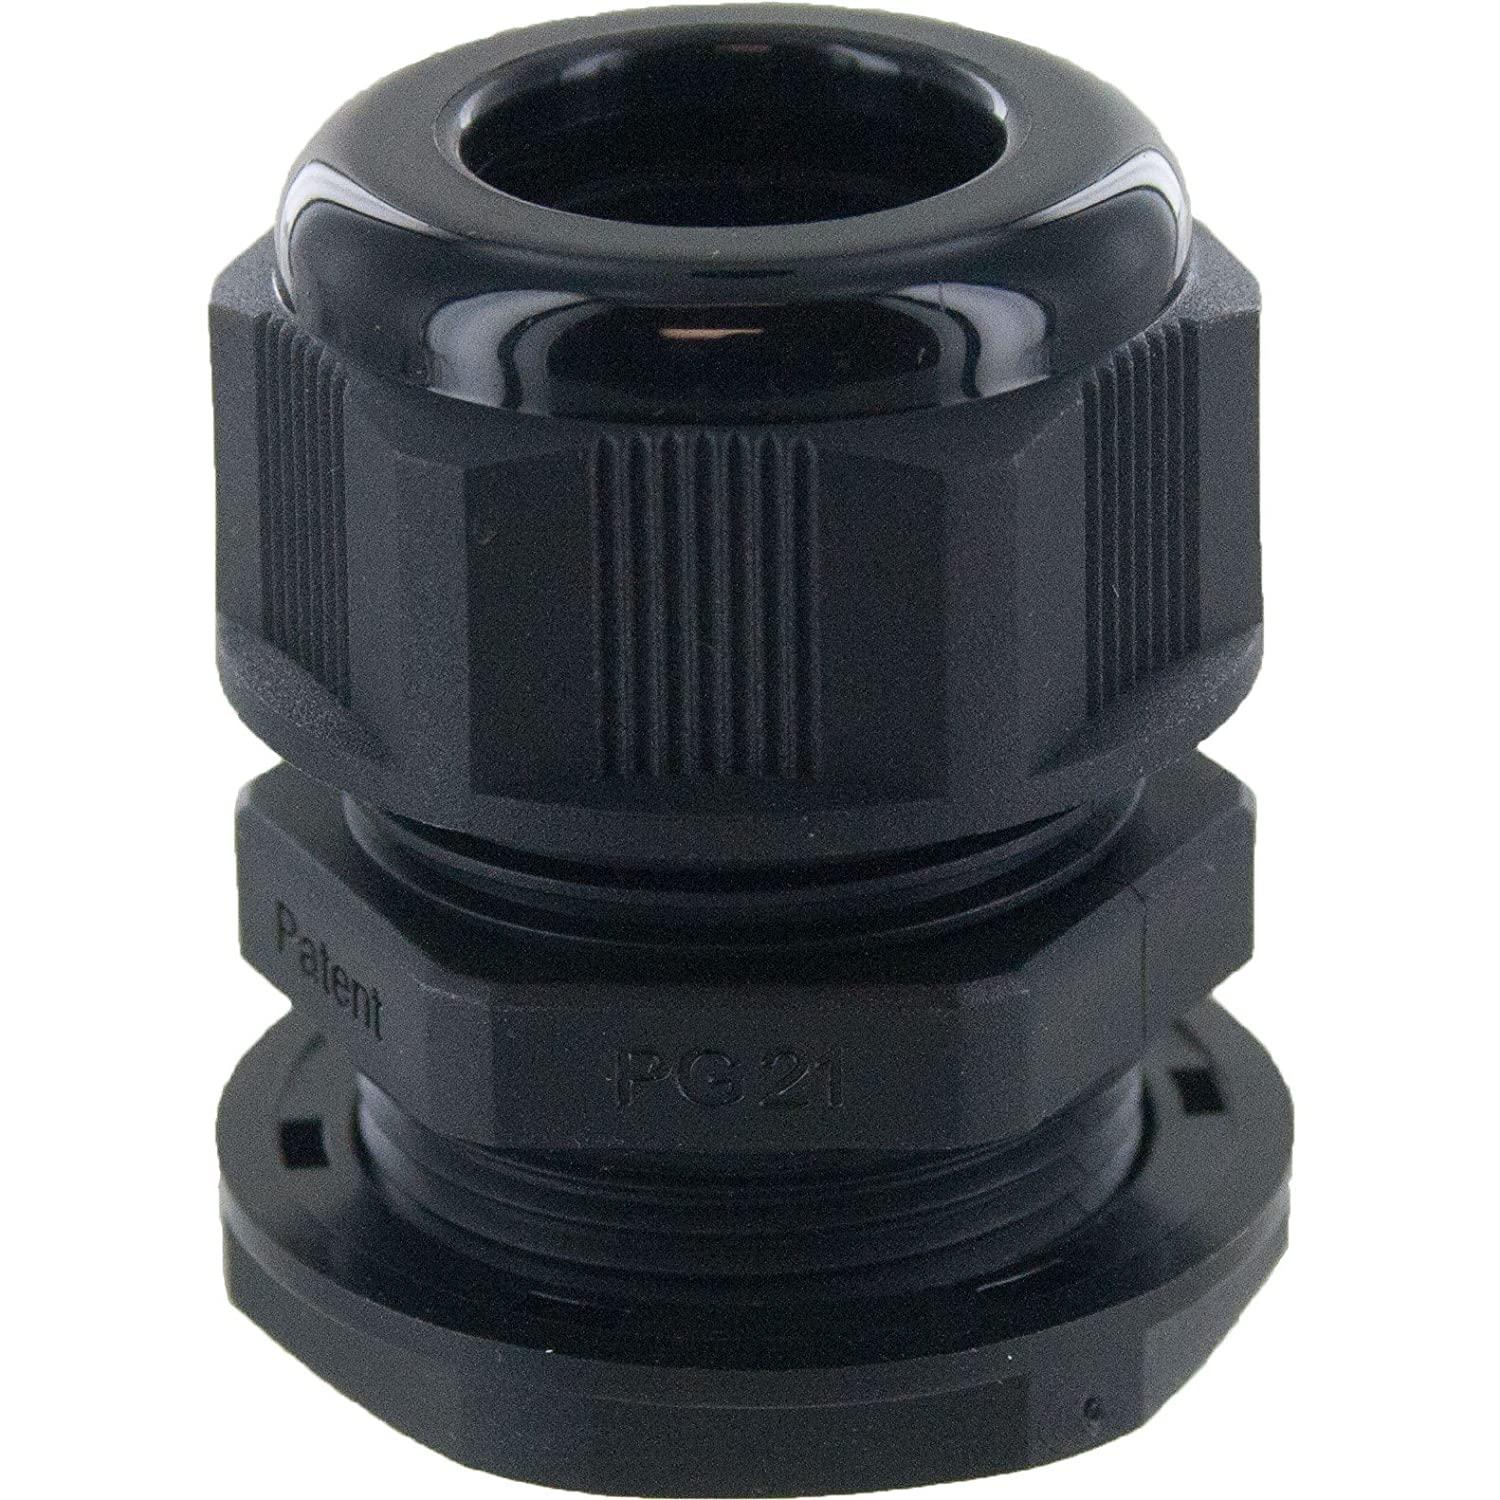 PG29 NYLON CABLE GLAND WITH LOCK NUT IP68 PROTECTION PACKS OF 10 29mm, BLACK